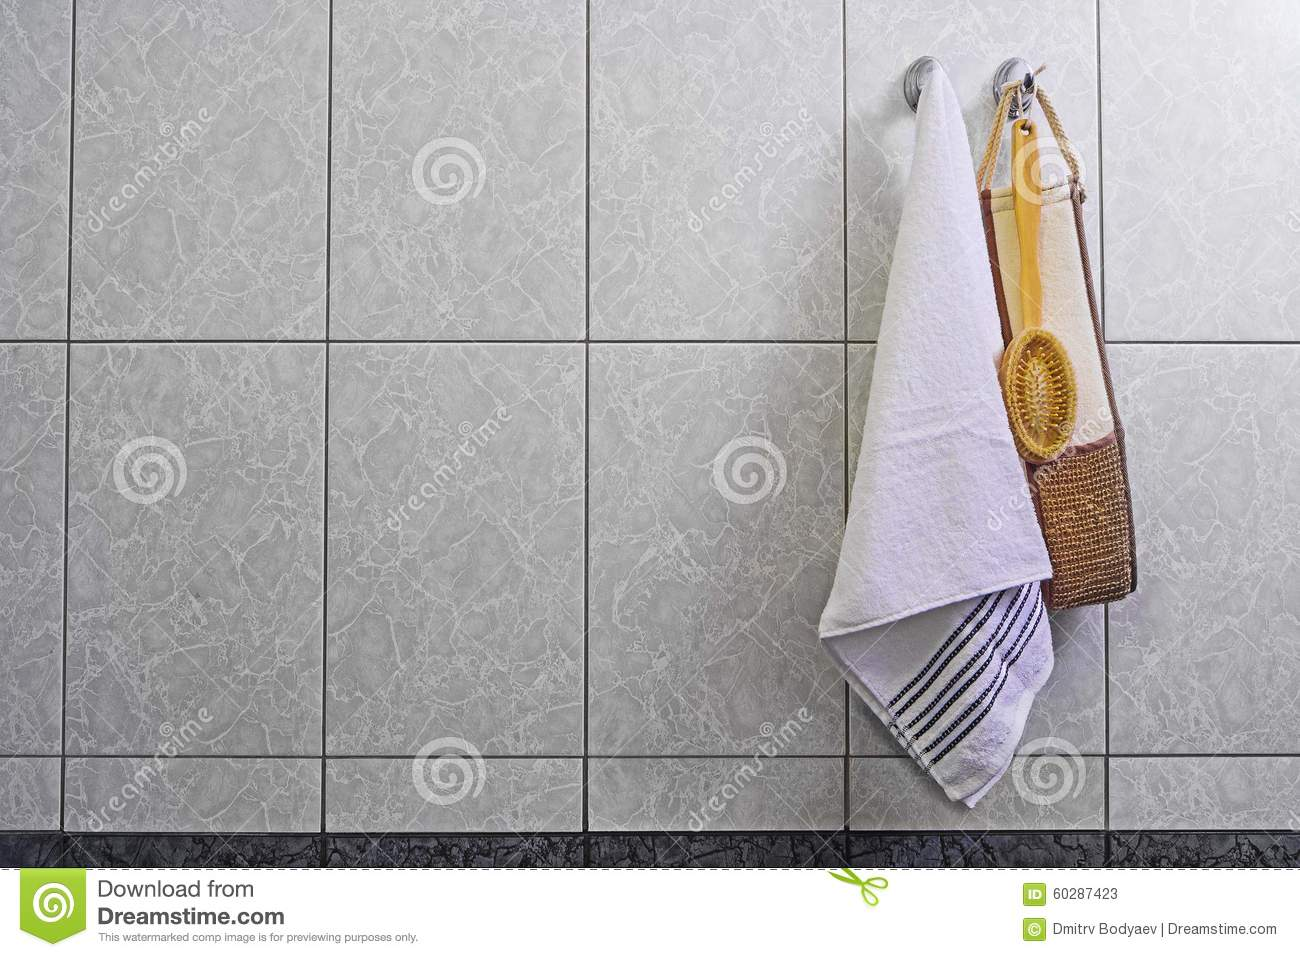 Brush washcloth and towel hanging on a hook in the bathroom, on